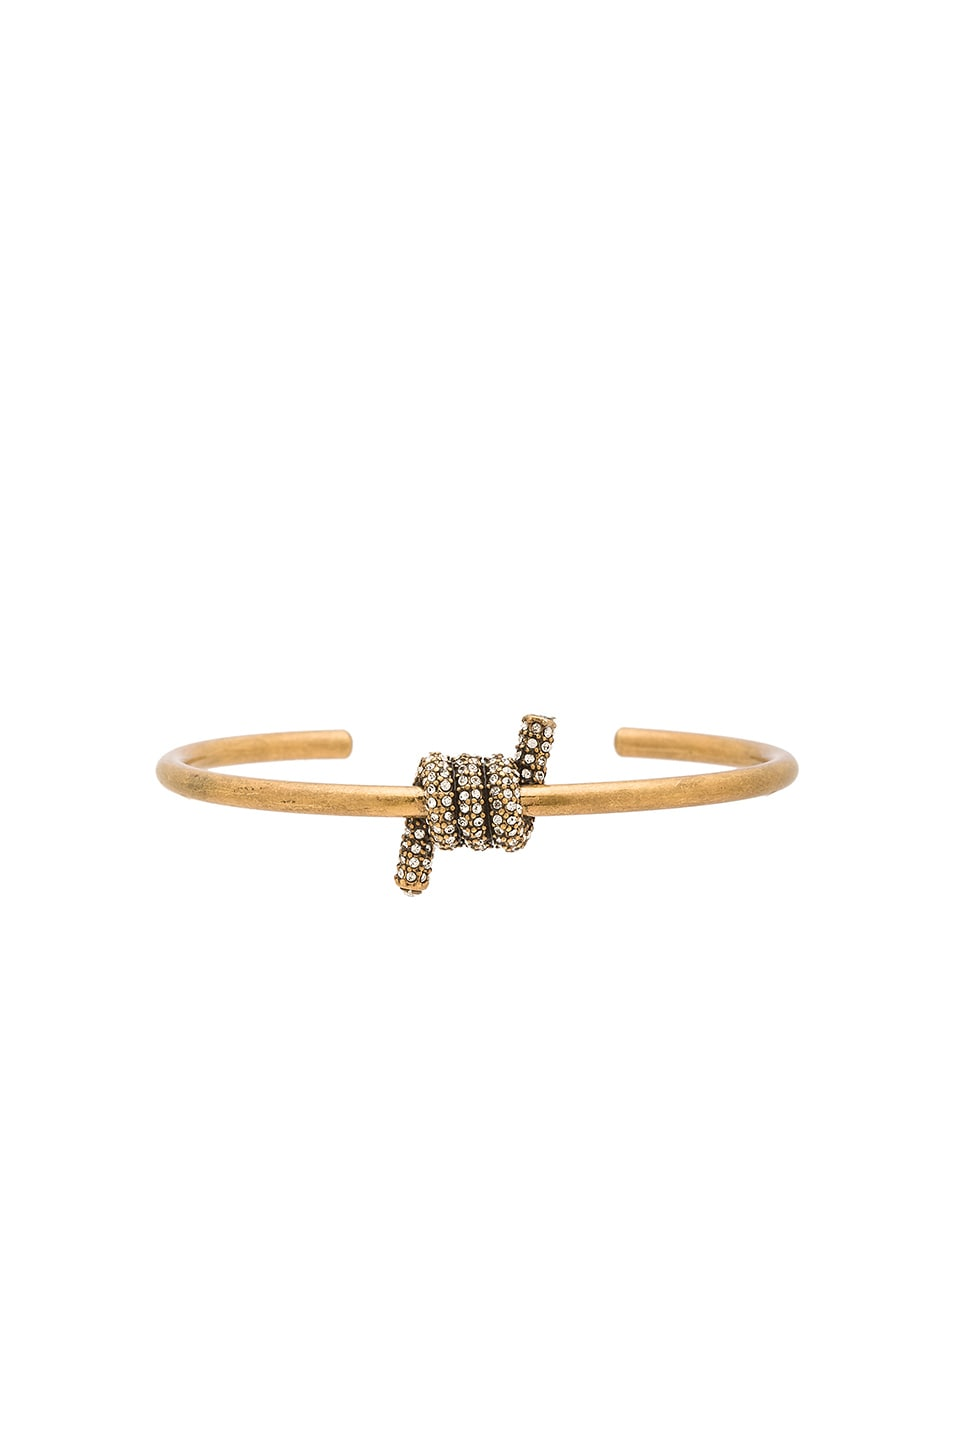 Marc Jacobs Pave Twisted Cuff in Crystal & Antique Gold